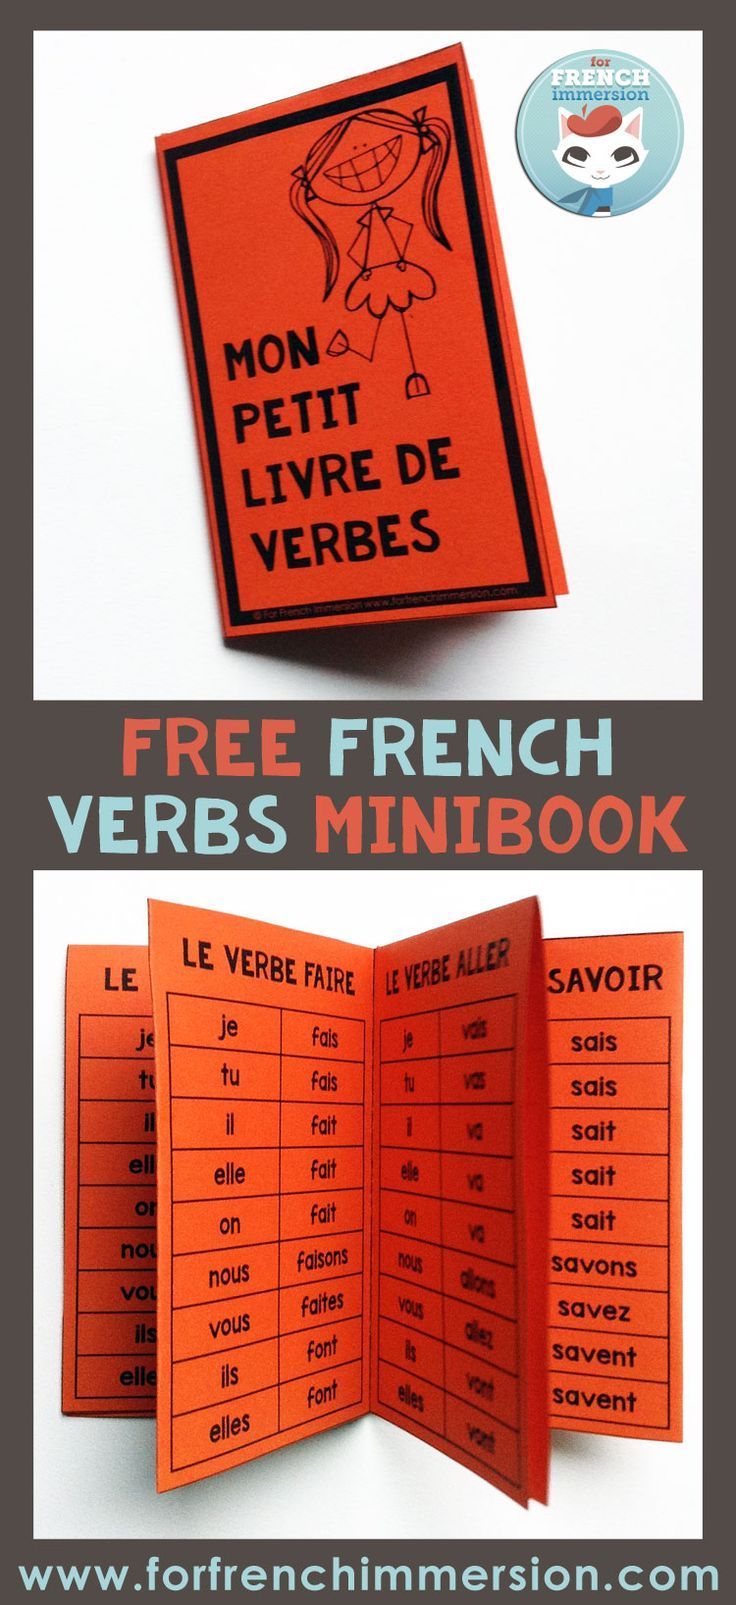 FREE French Verbs Minibook: your students will enjoy creating this mini-book to help them conjugate French verbs! One sheet of paper is all it takes :)